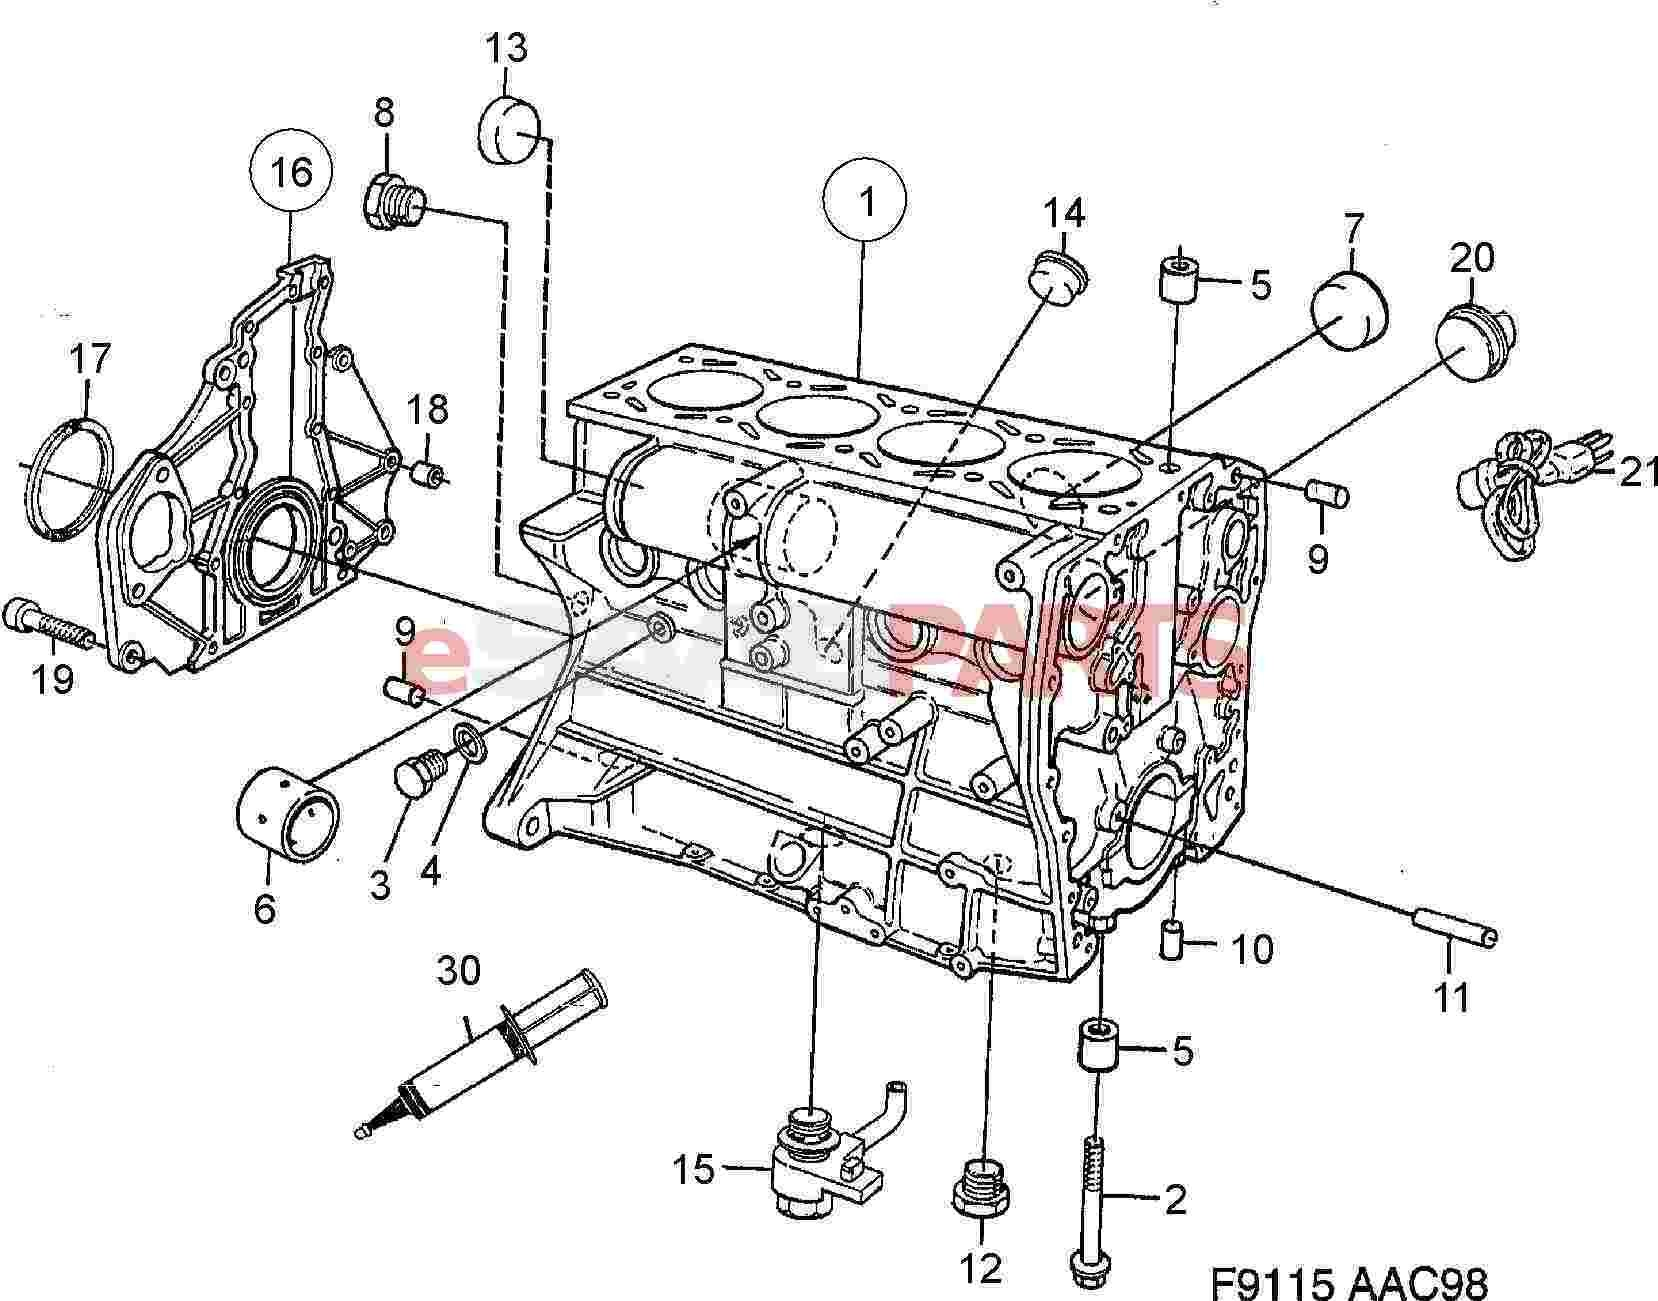 1999 Mitsubishi Eclipse Engine Diagram Wiring Library Kawasaki Mule Ignition Saab 9 3